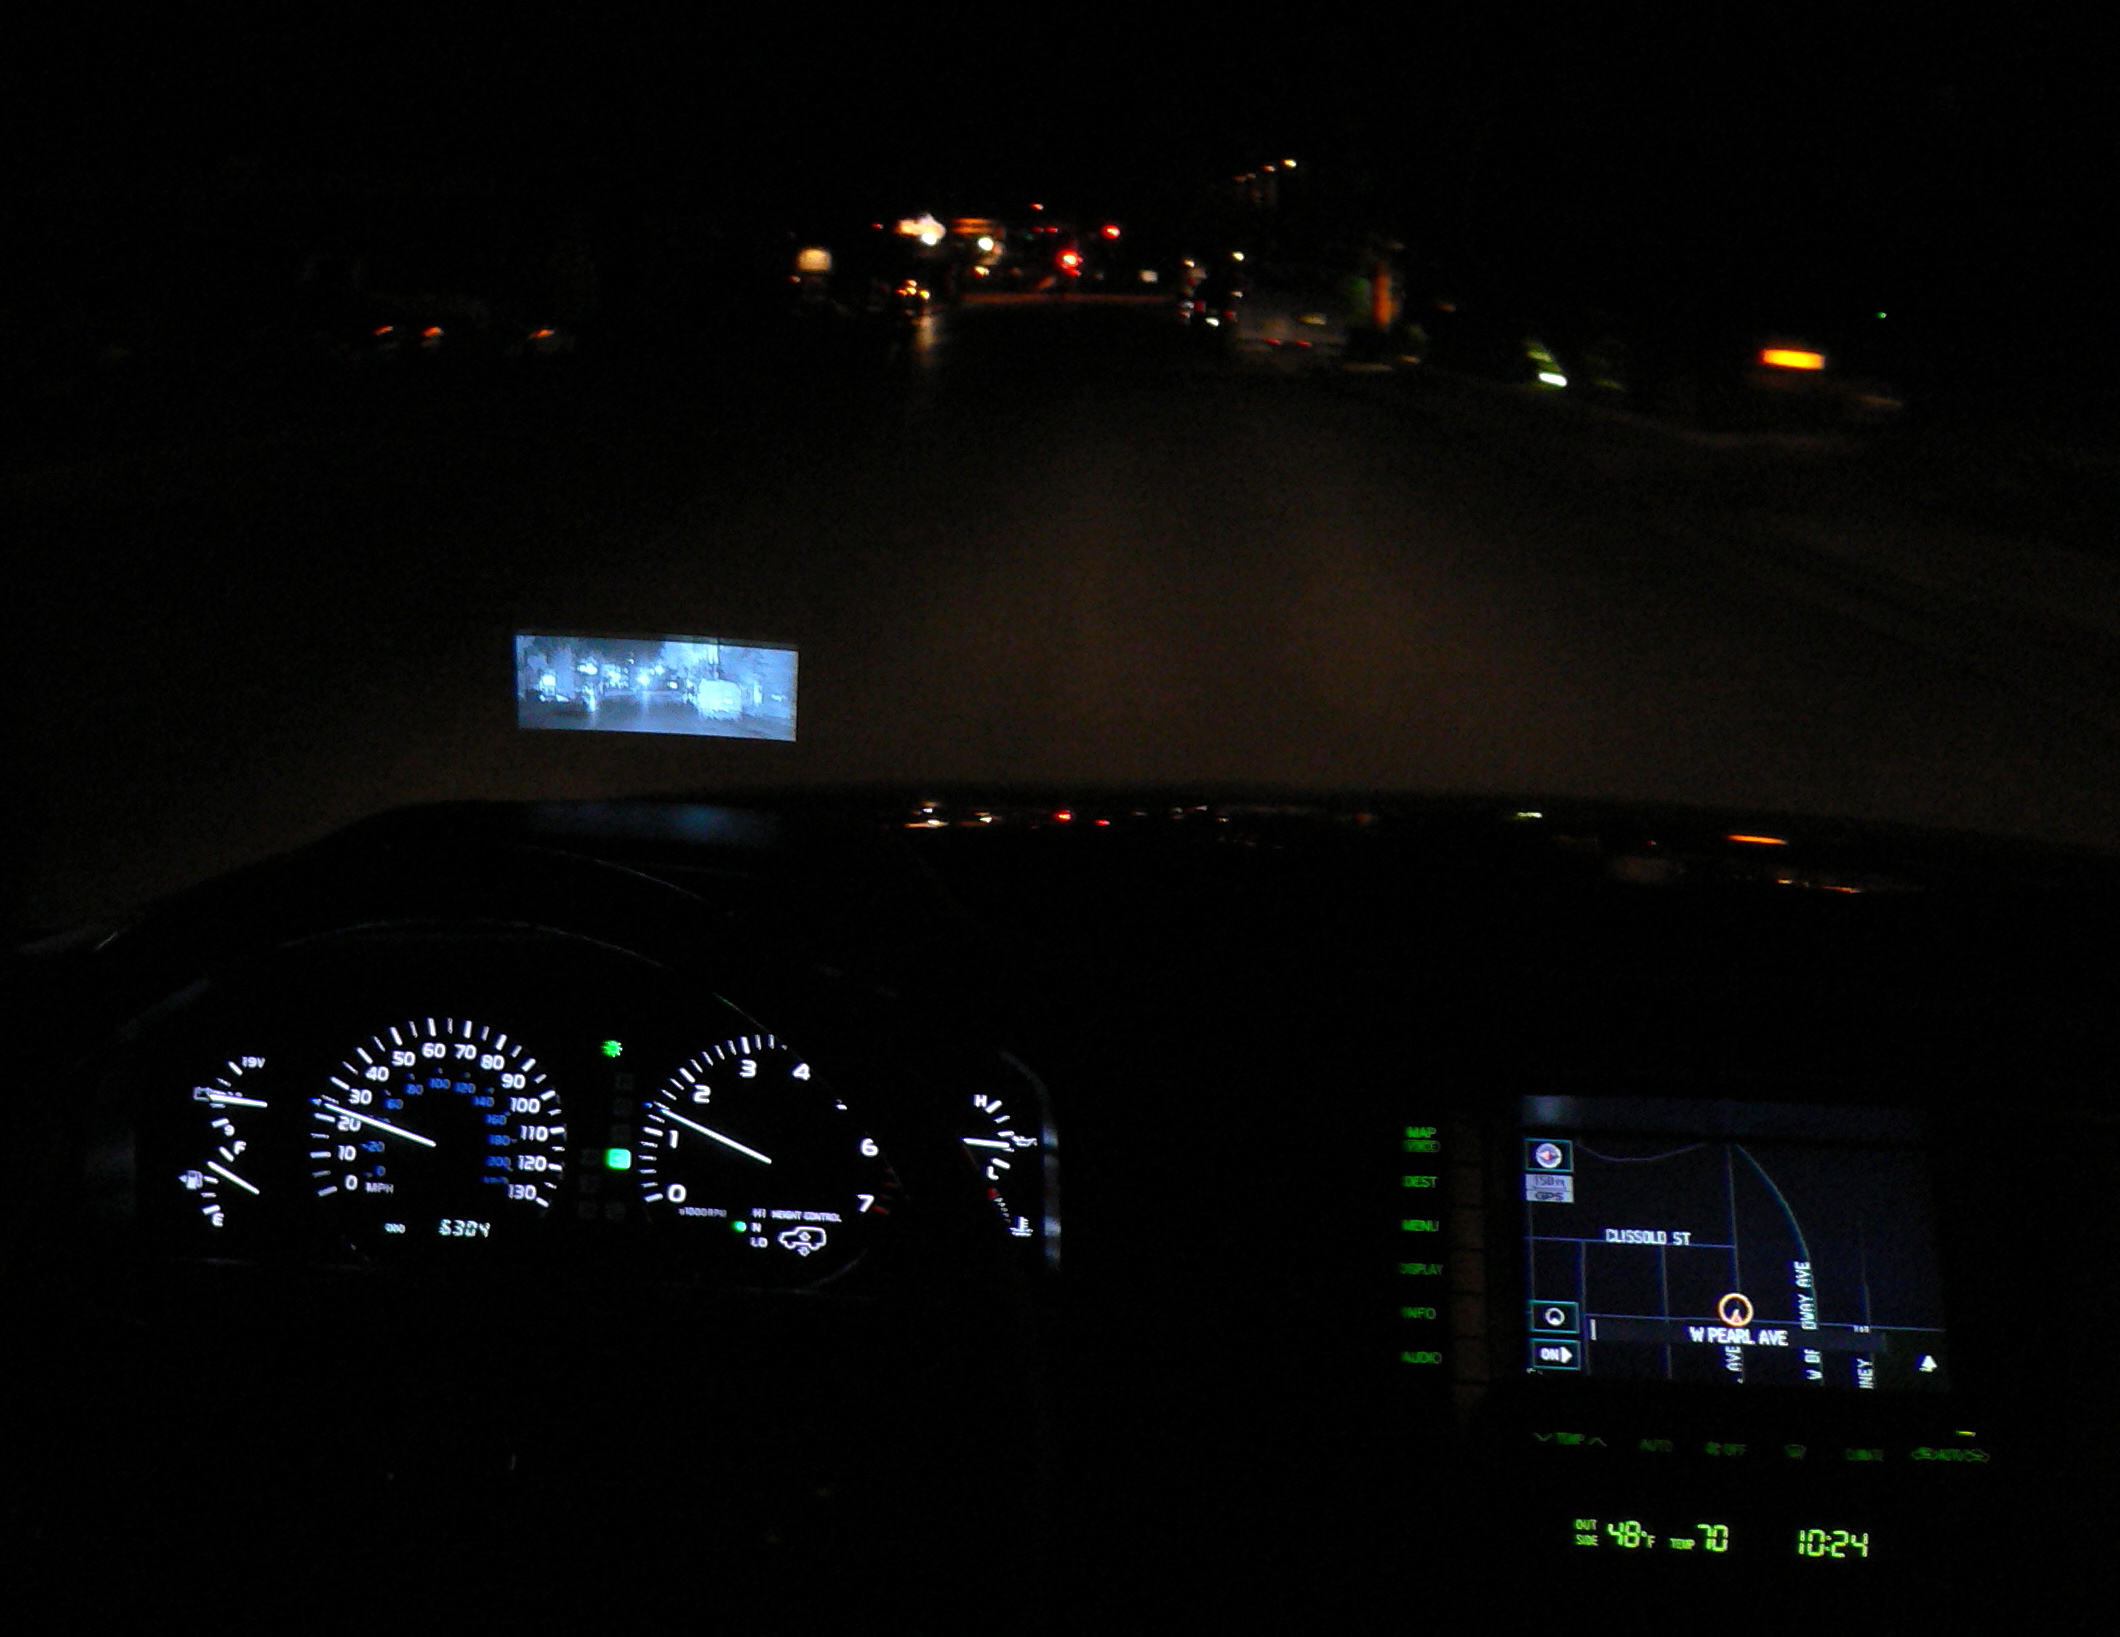 HUD Display used for improving night visibility